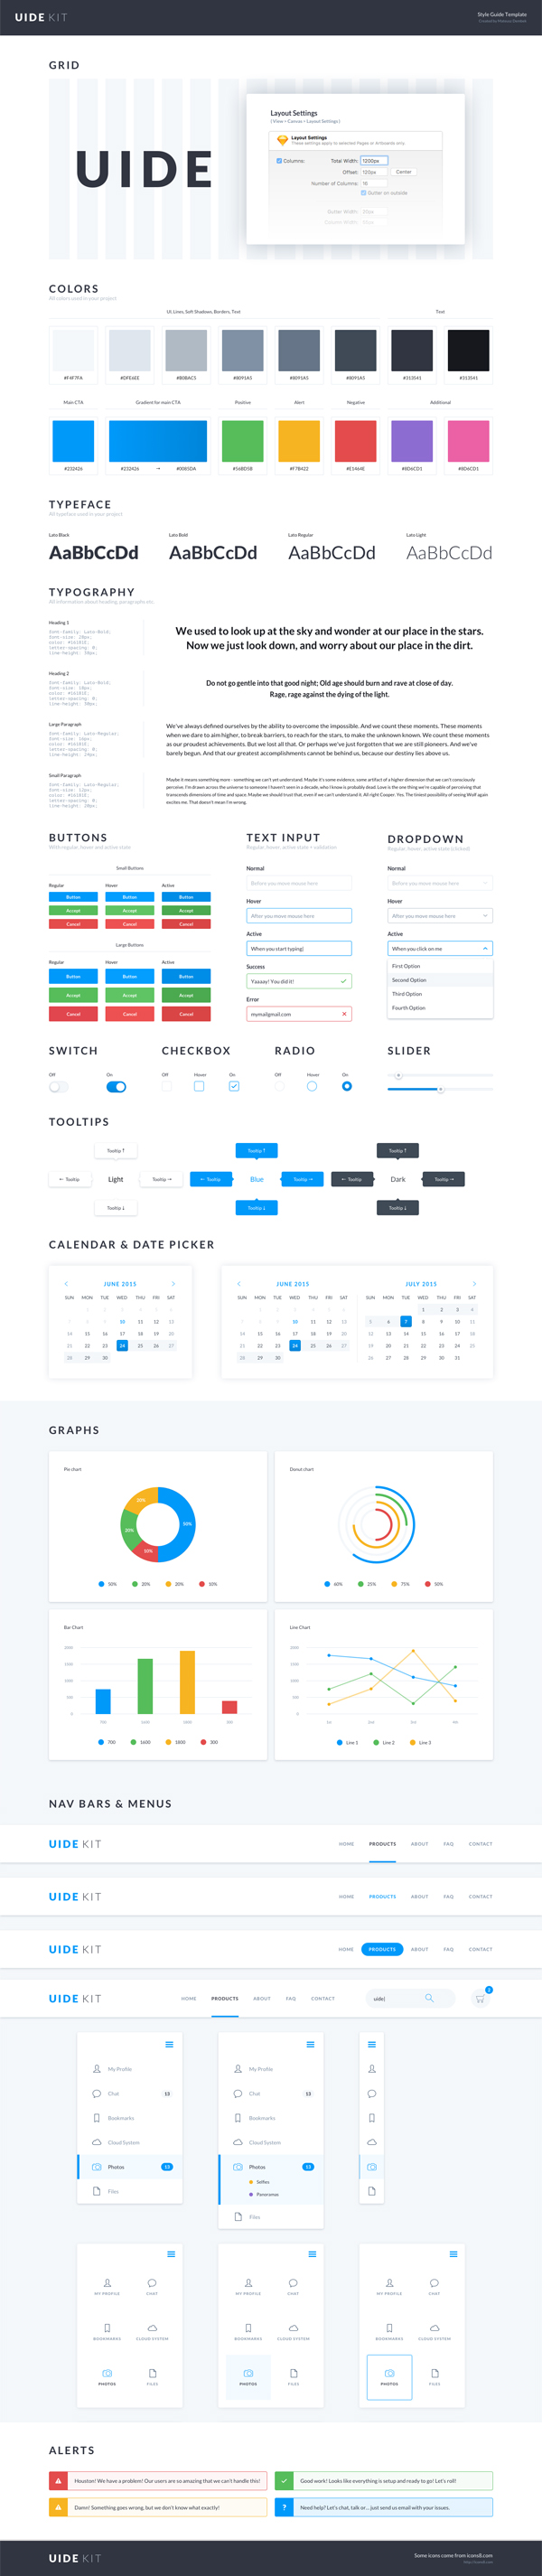 Free UIDE Kit (Style Guide Template)